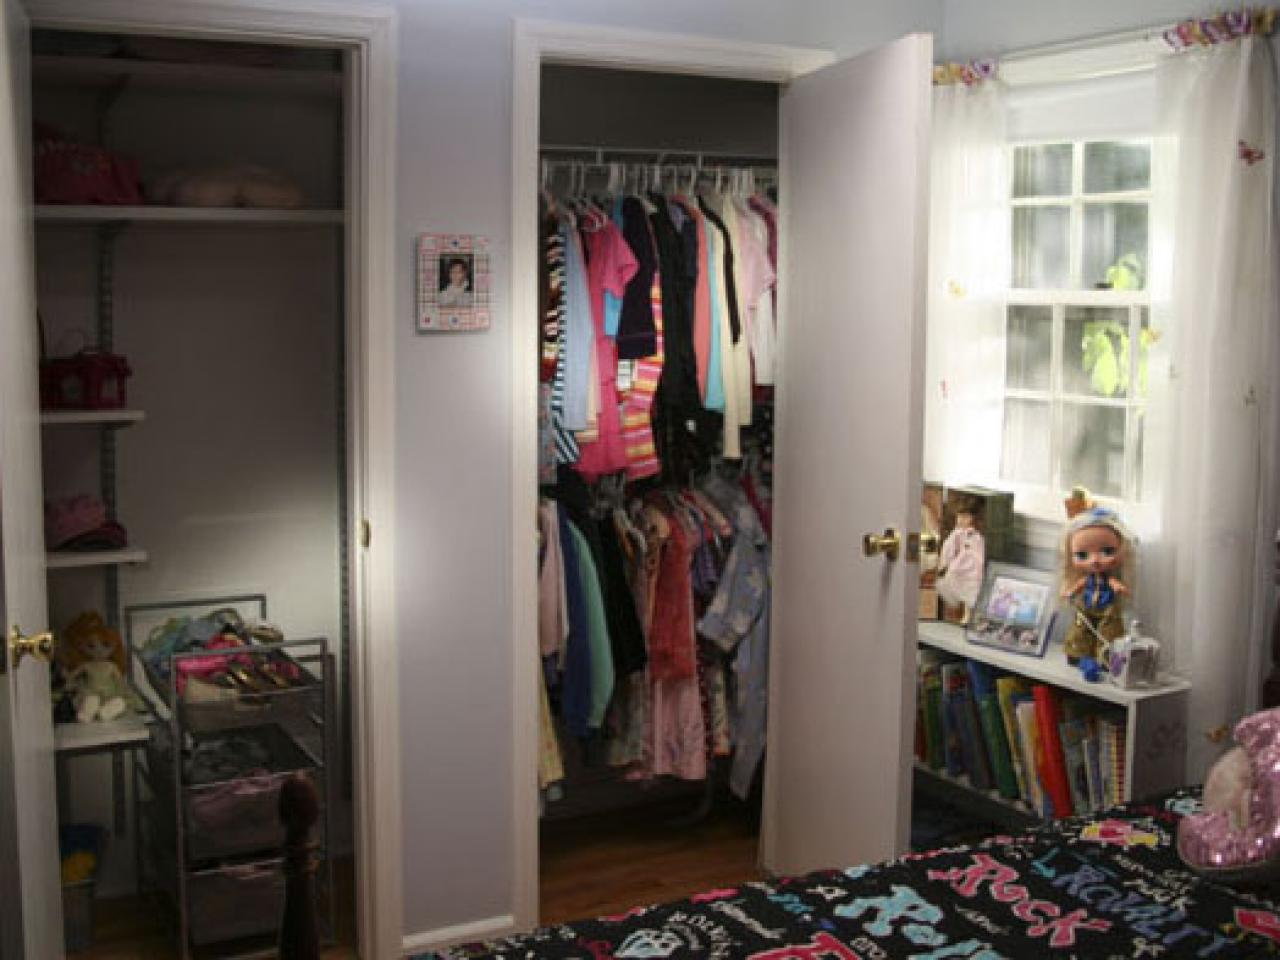 Modern Related To: replacement sliding wardrobe doors